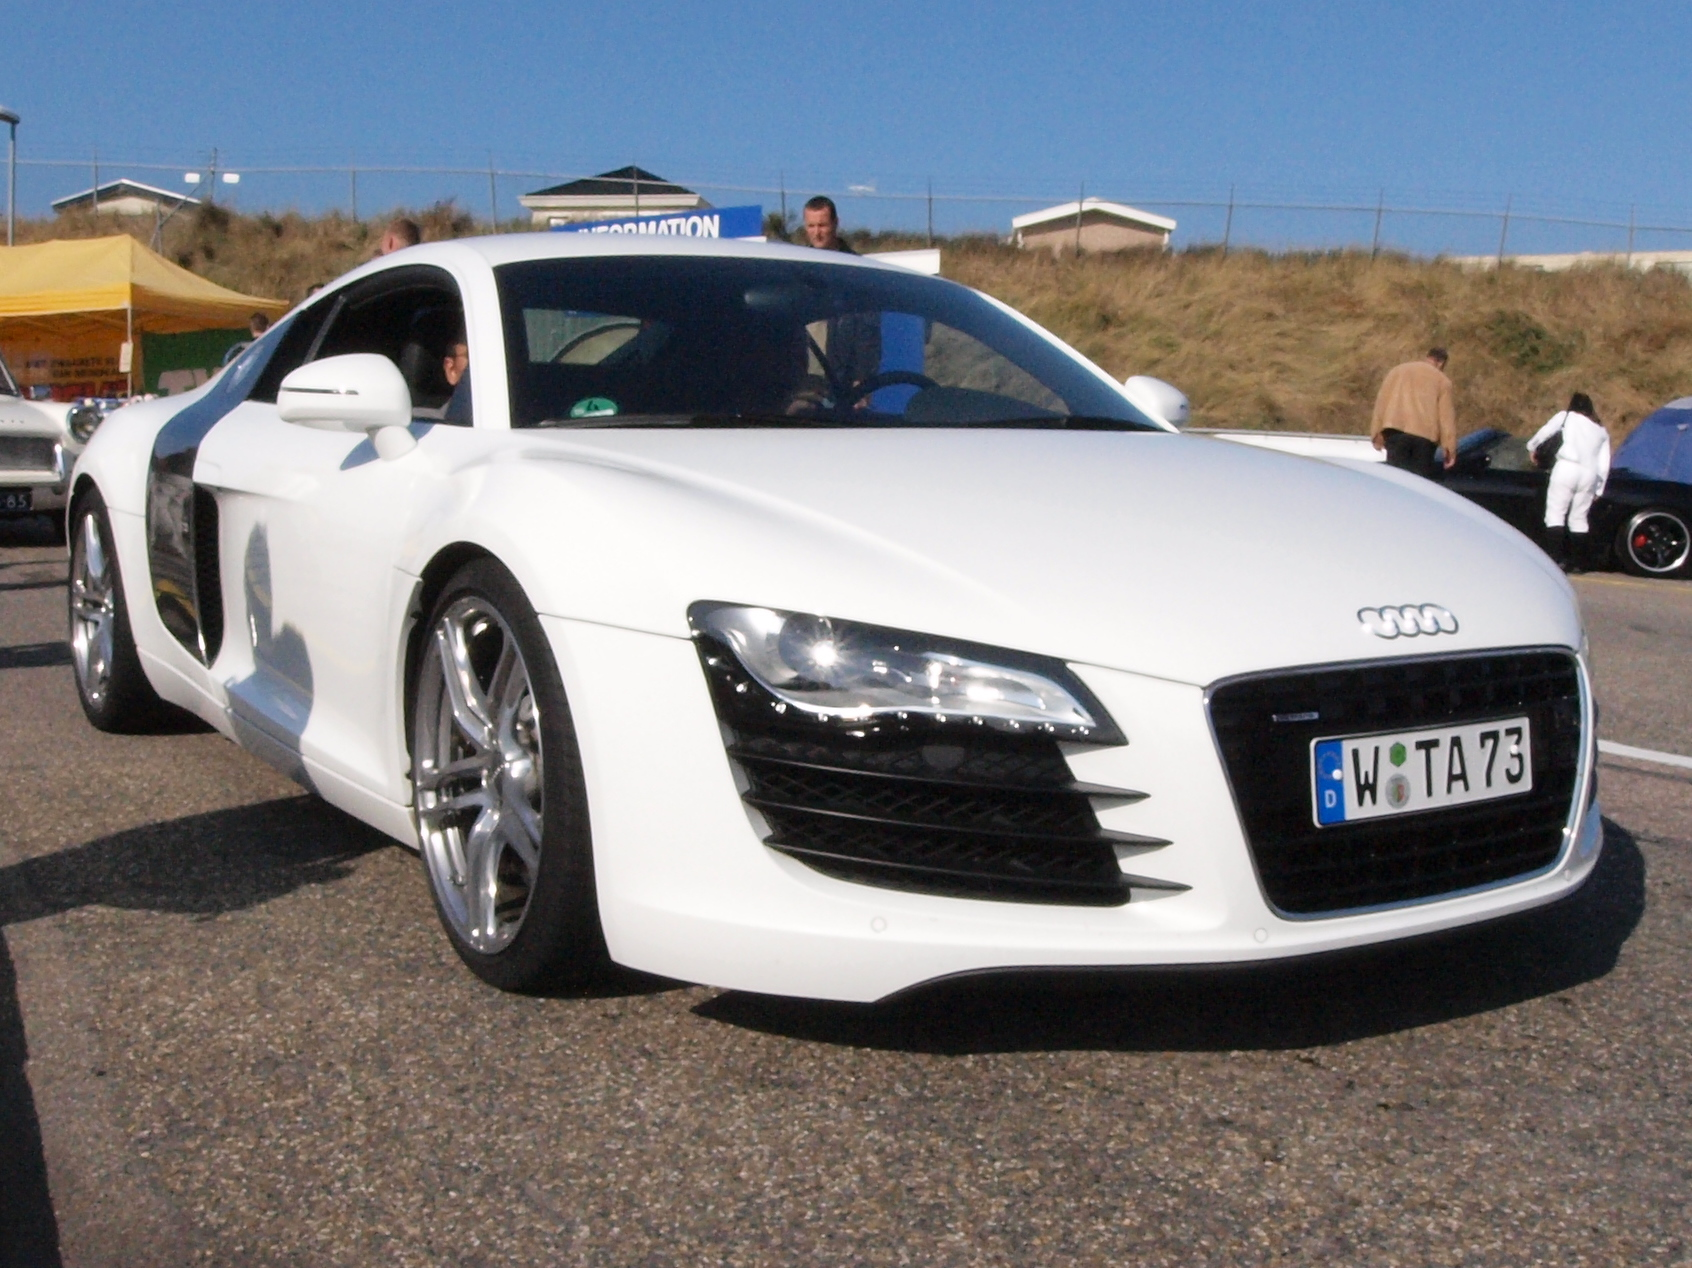 File Audi German Licence Registration W Ta 73 Jpg